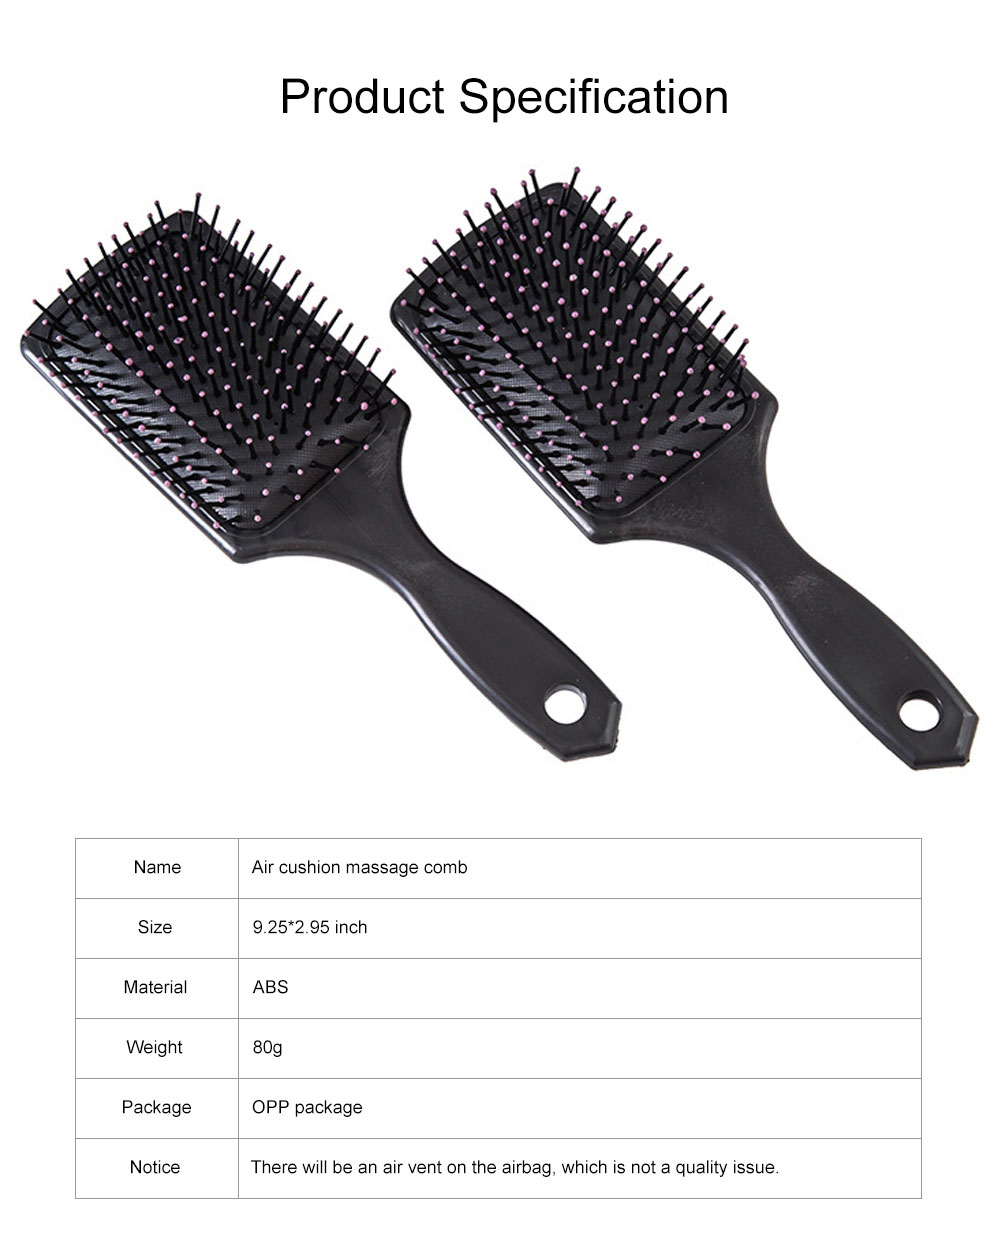 Minimalist Large Rectangle Air Cushion Massage Comb Professional Airbag Anti-static Hairbrush for Curly Hair 6